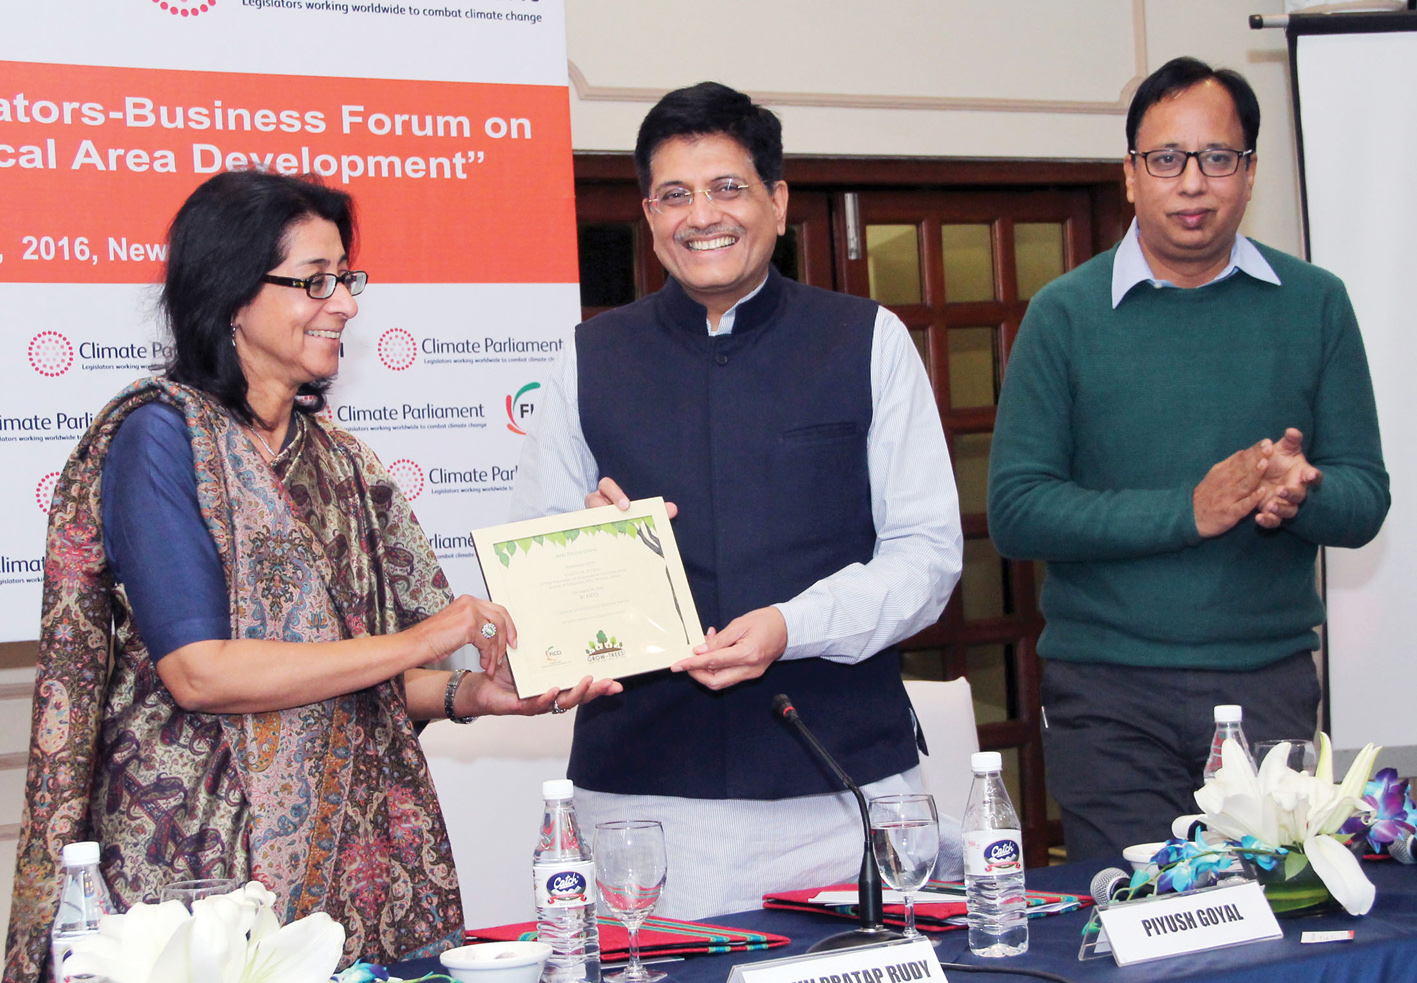 Piyush Goyal, Minister of State (Independent Charge) for Power, Coal, New and Renewable Energy and Mines (centre), at the FICCI-Climate Parliament Legislator-Business Forum, in New Delhi